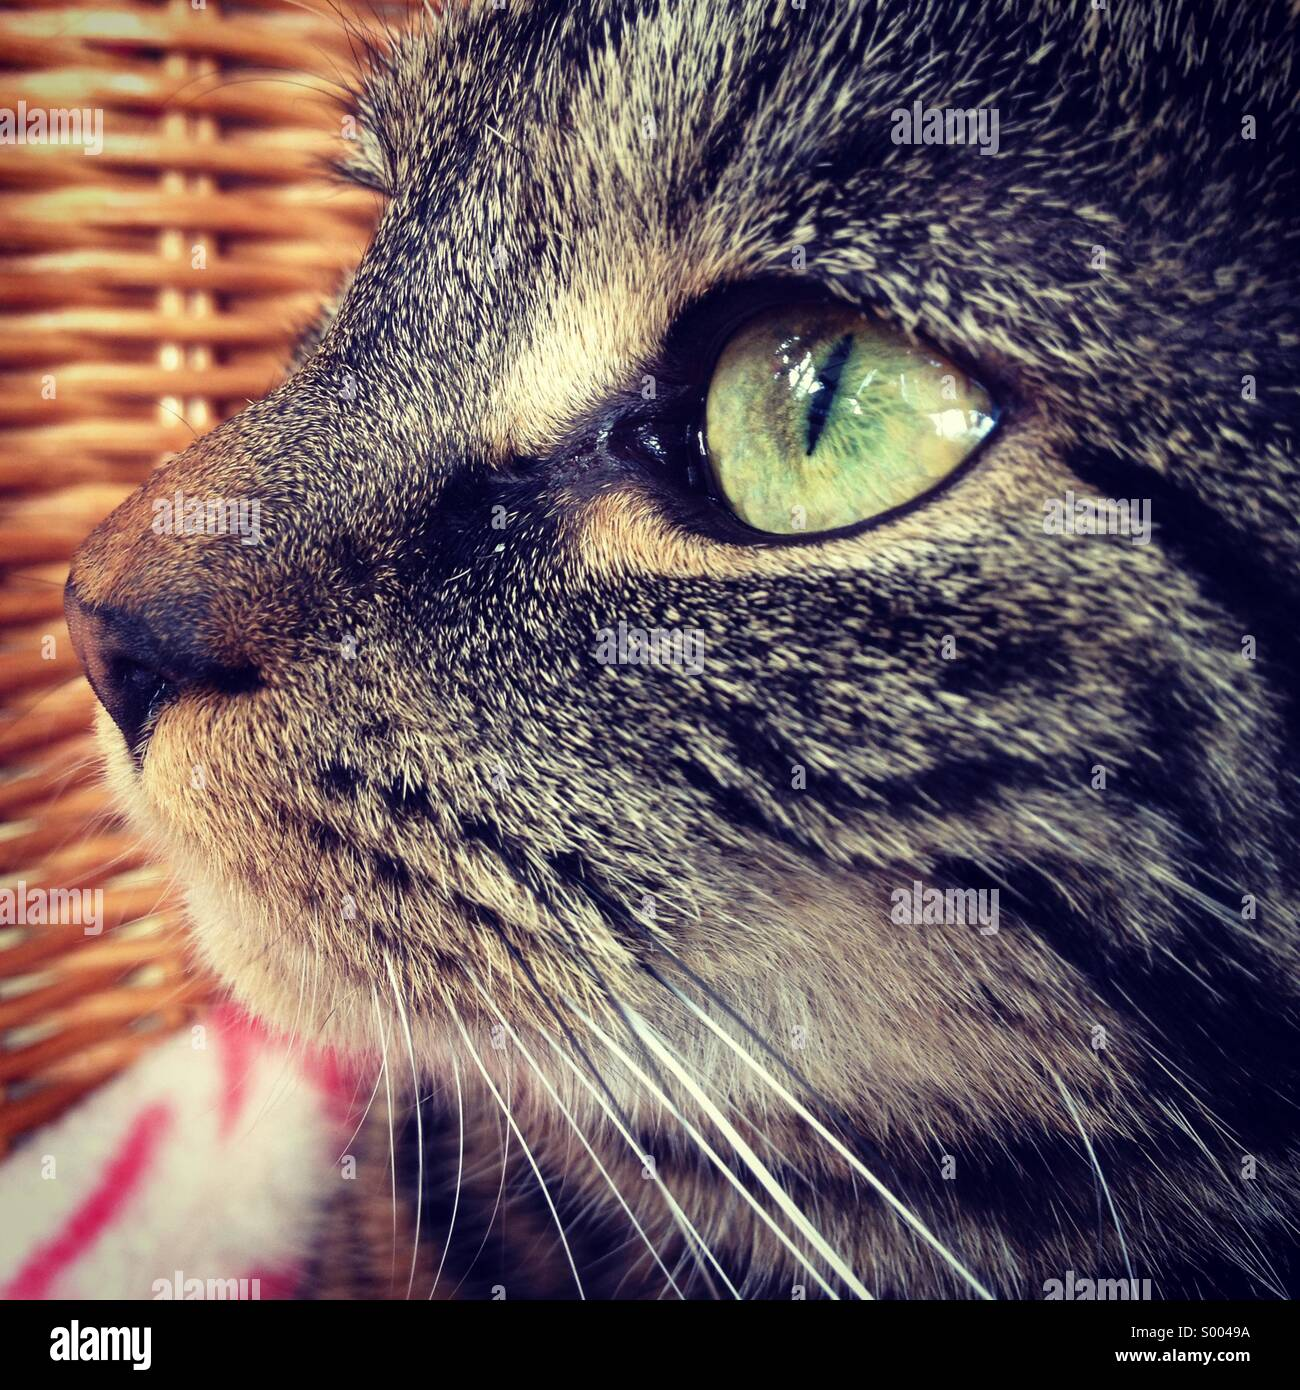 Close-up of a tabby cat profile - Stock Image